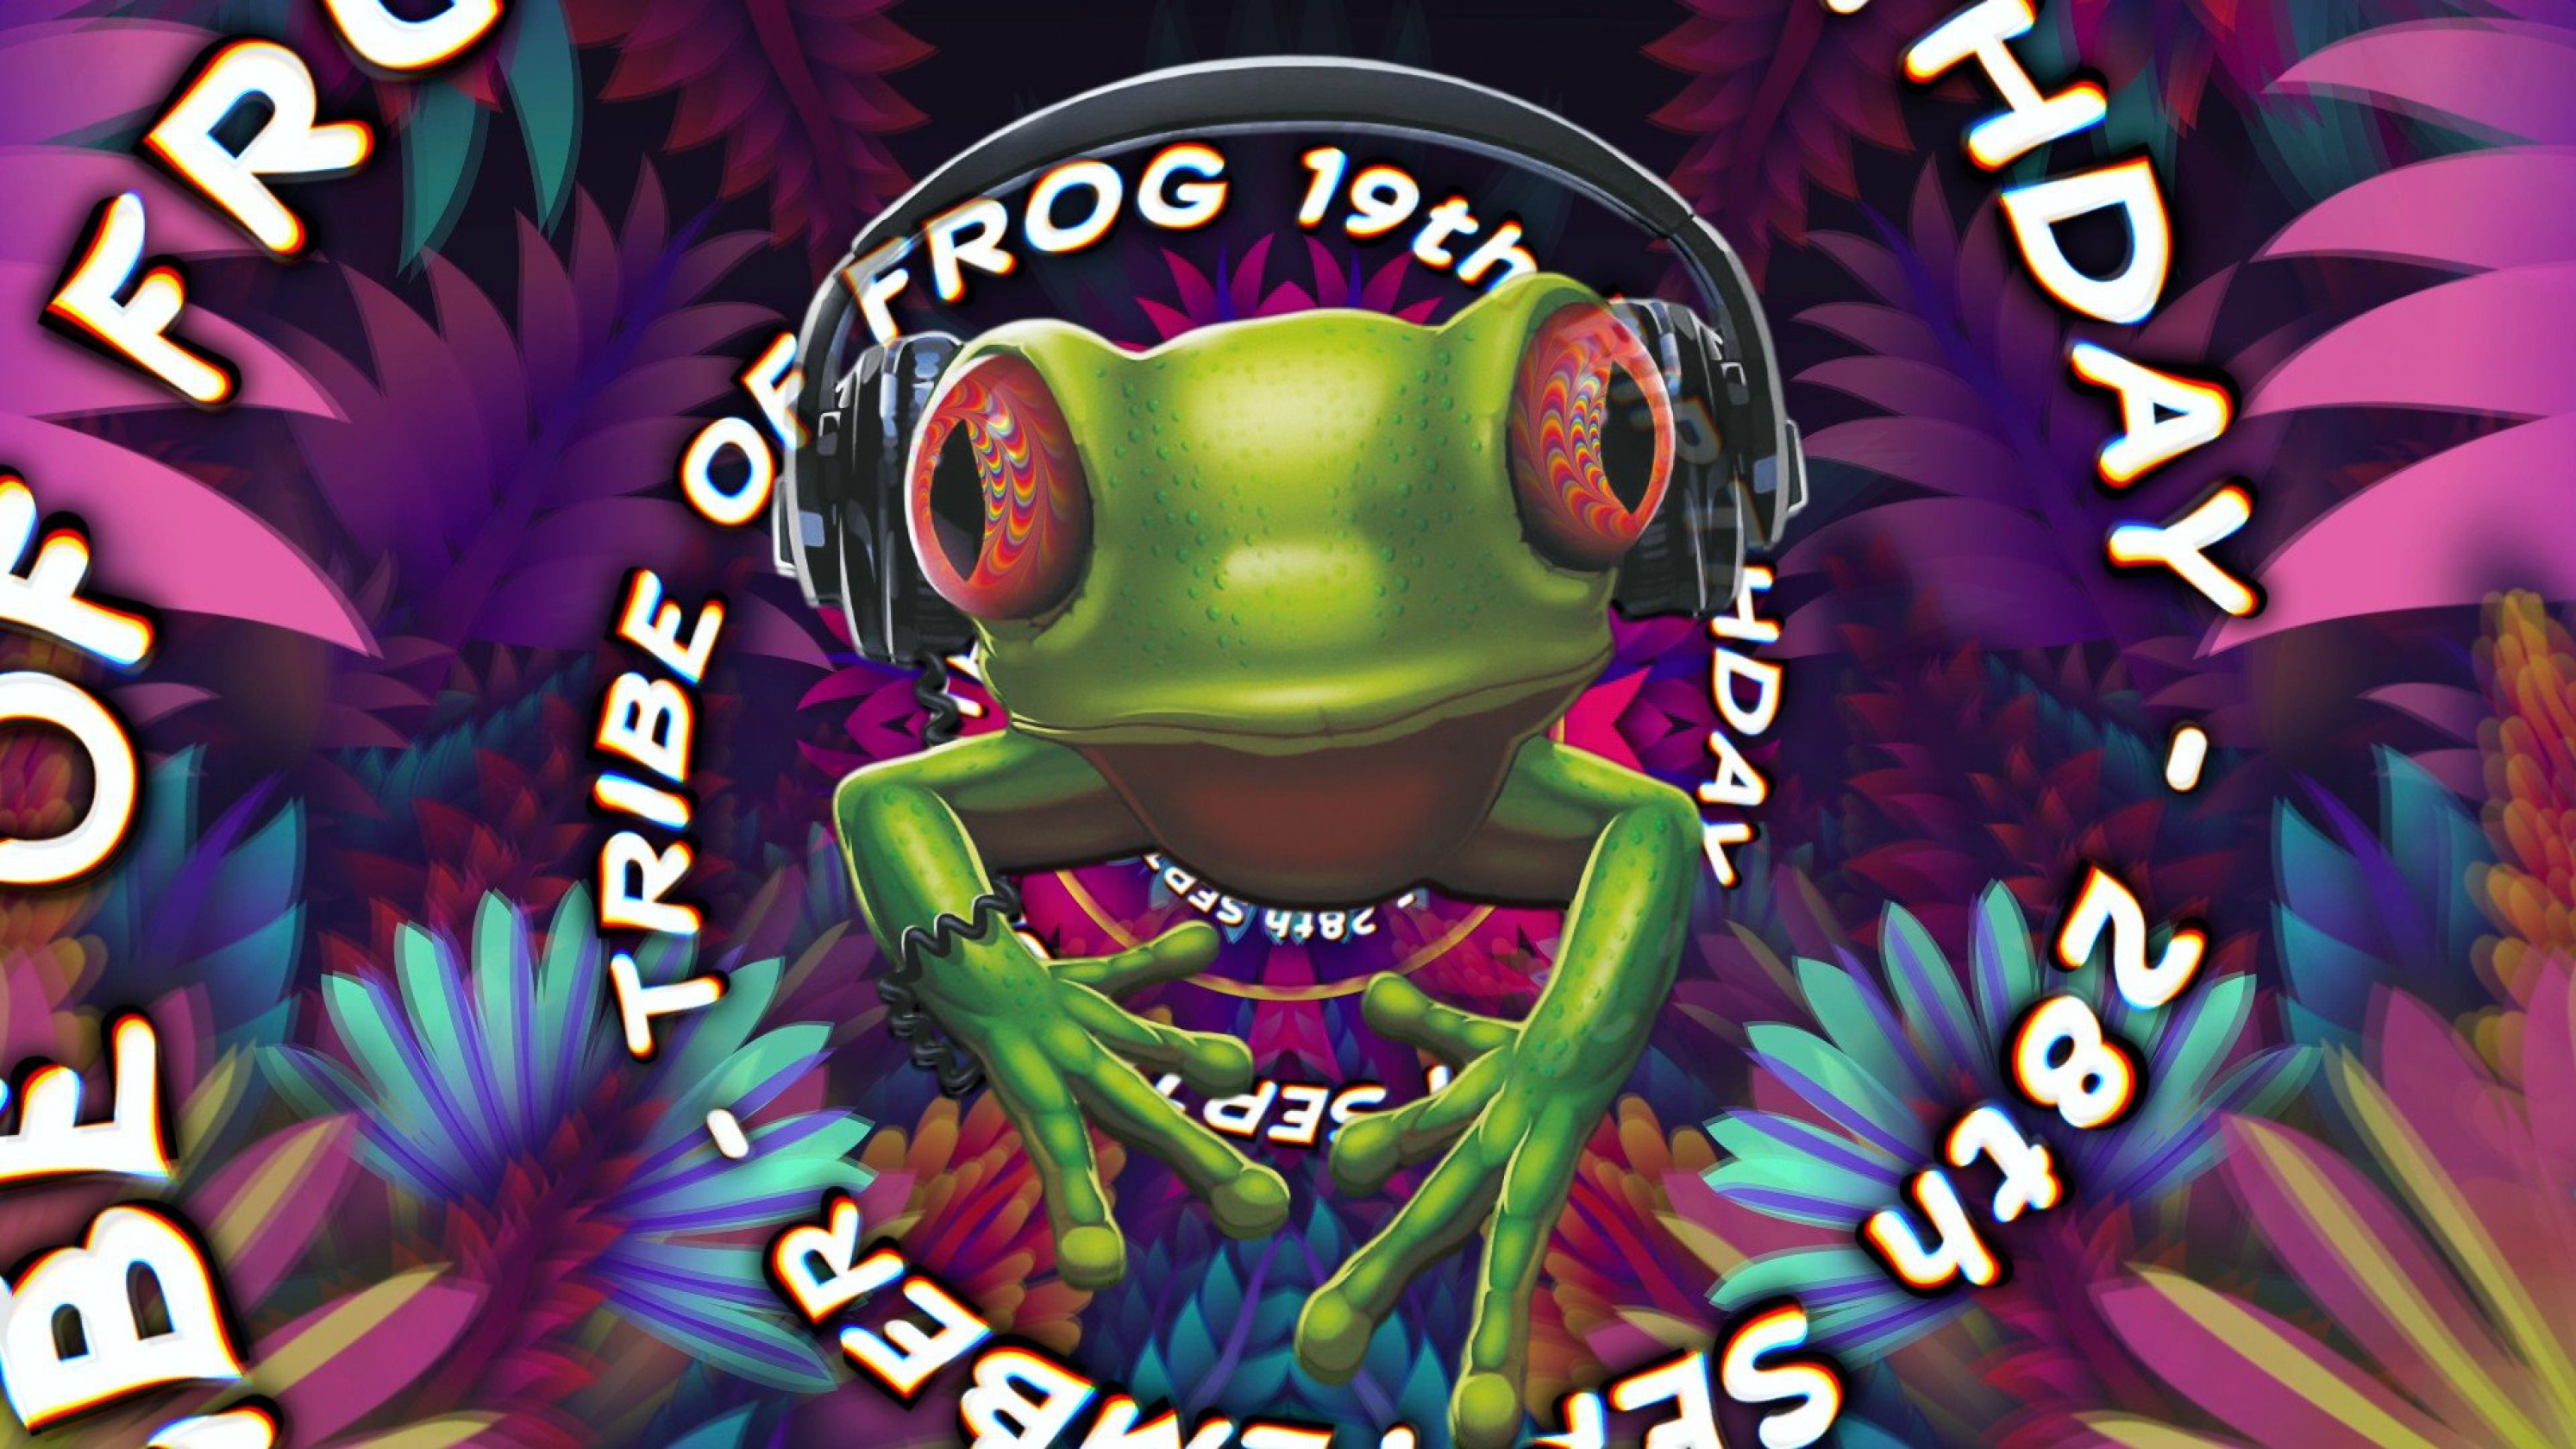 TRiBE of FRoG ☆ 19th Birthday